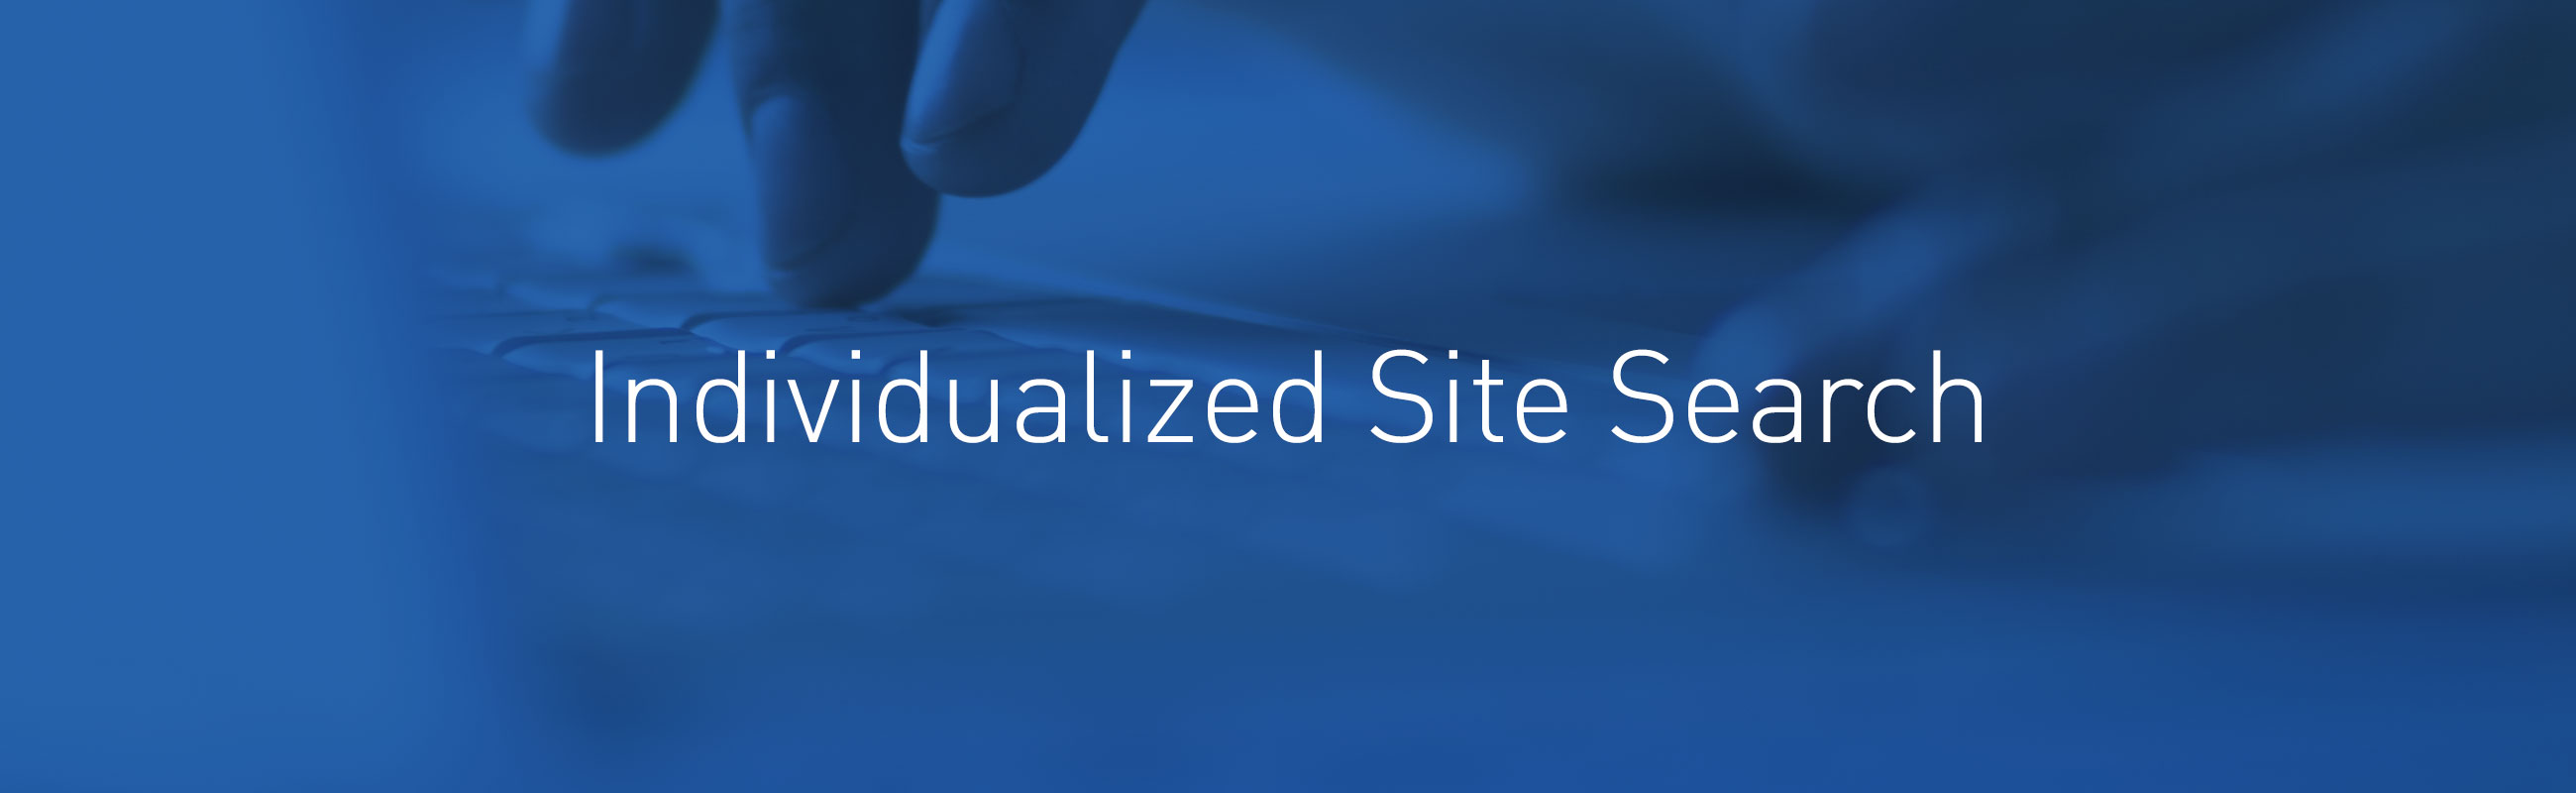 Individualized Site Search